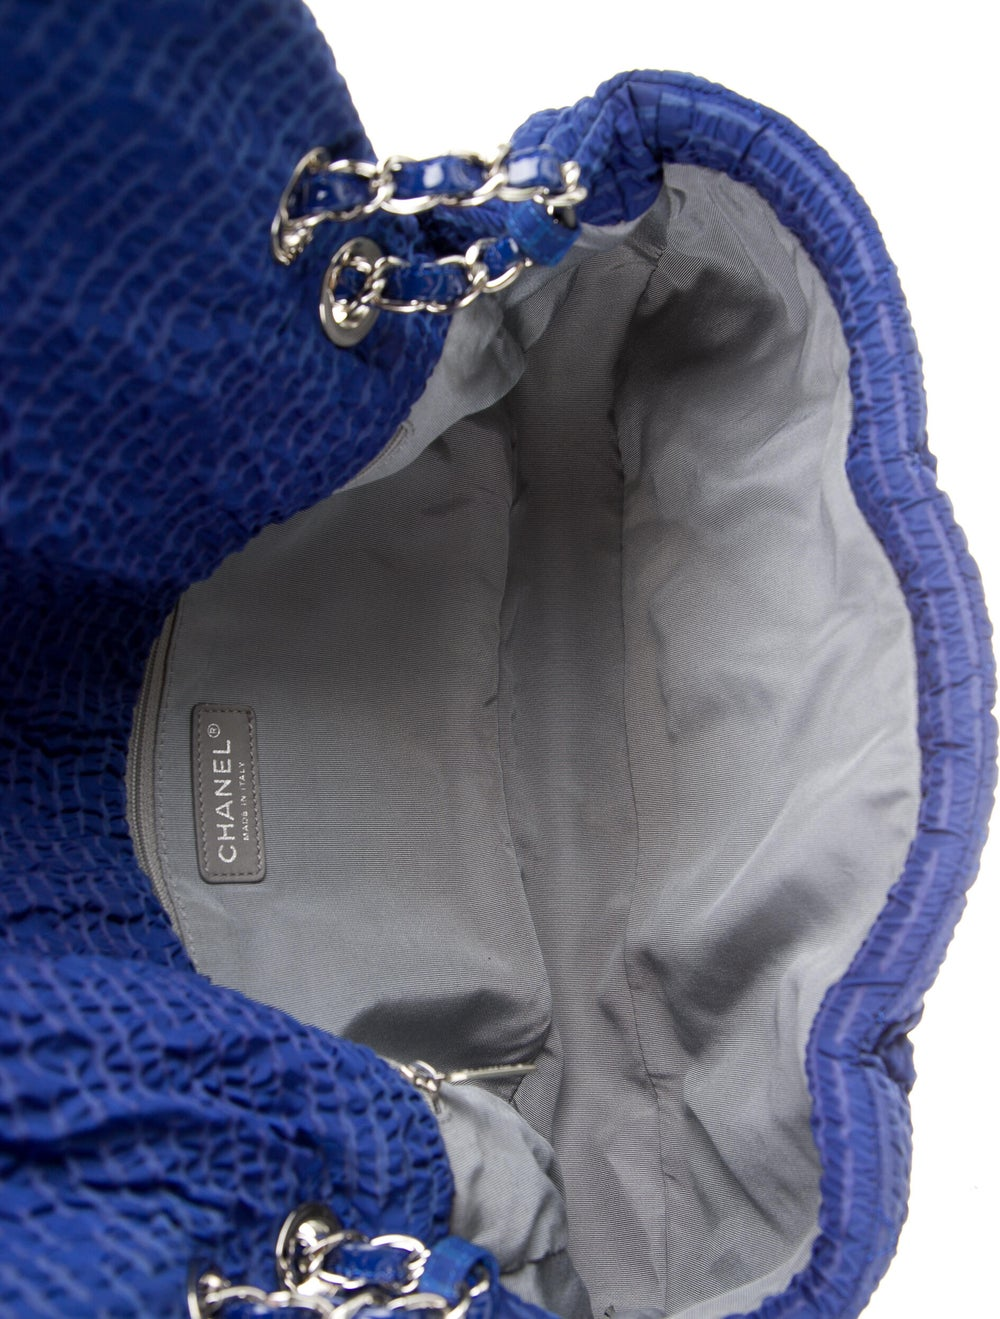 Chanel Cloquee Flap Bag Blue - image 5